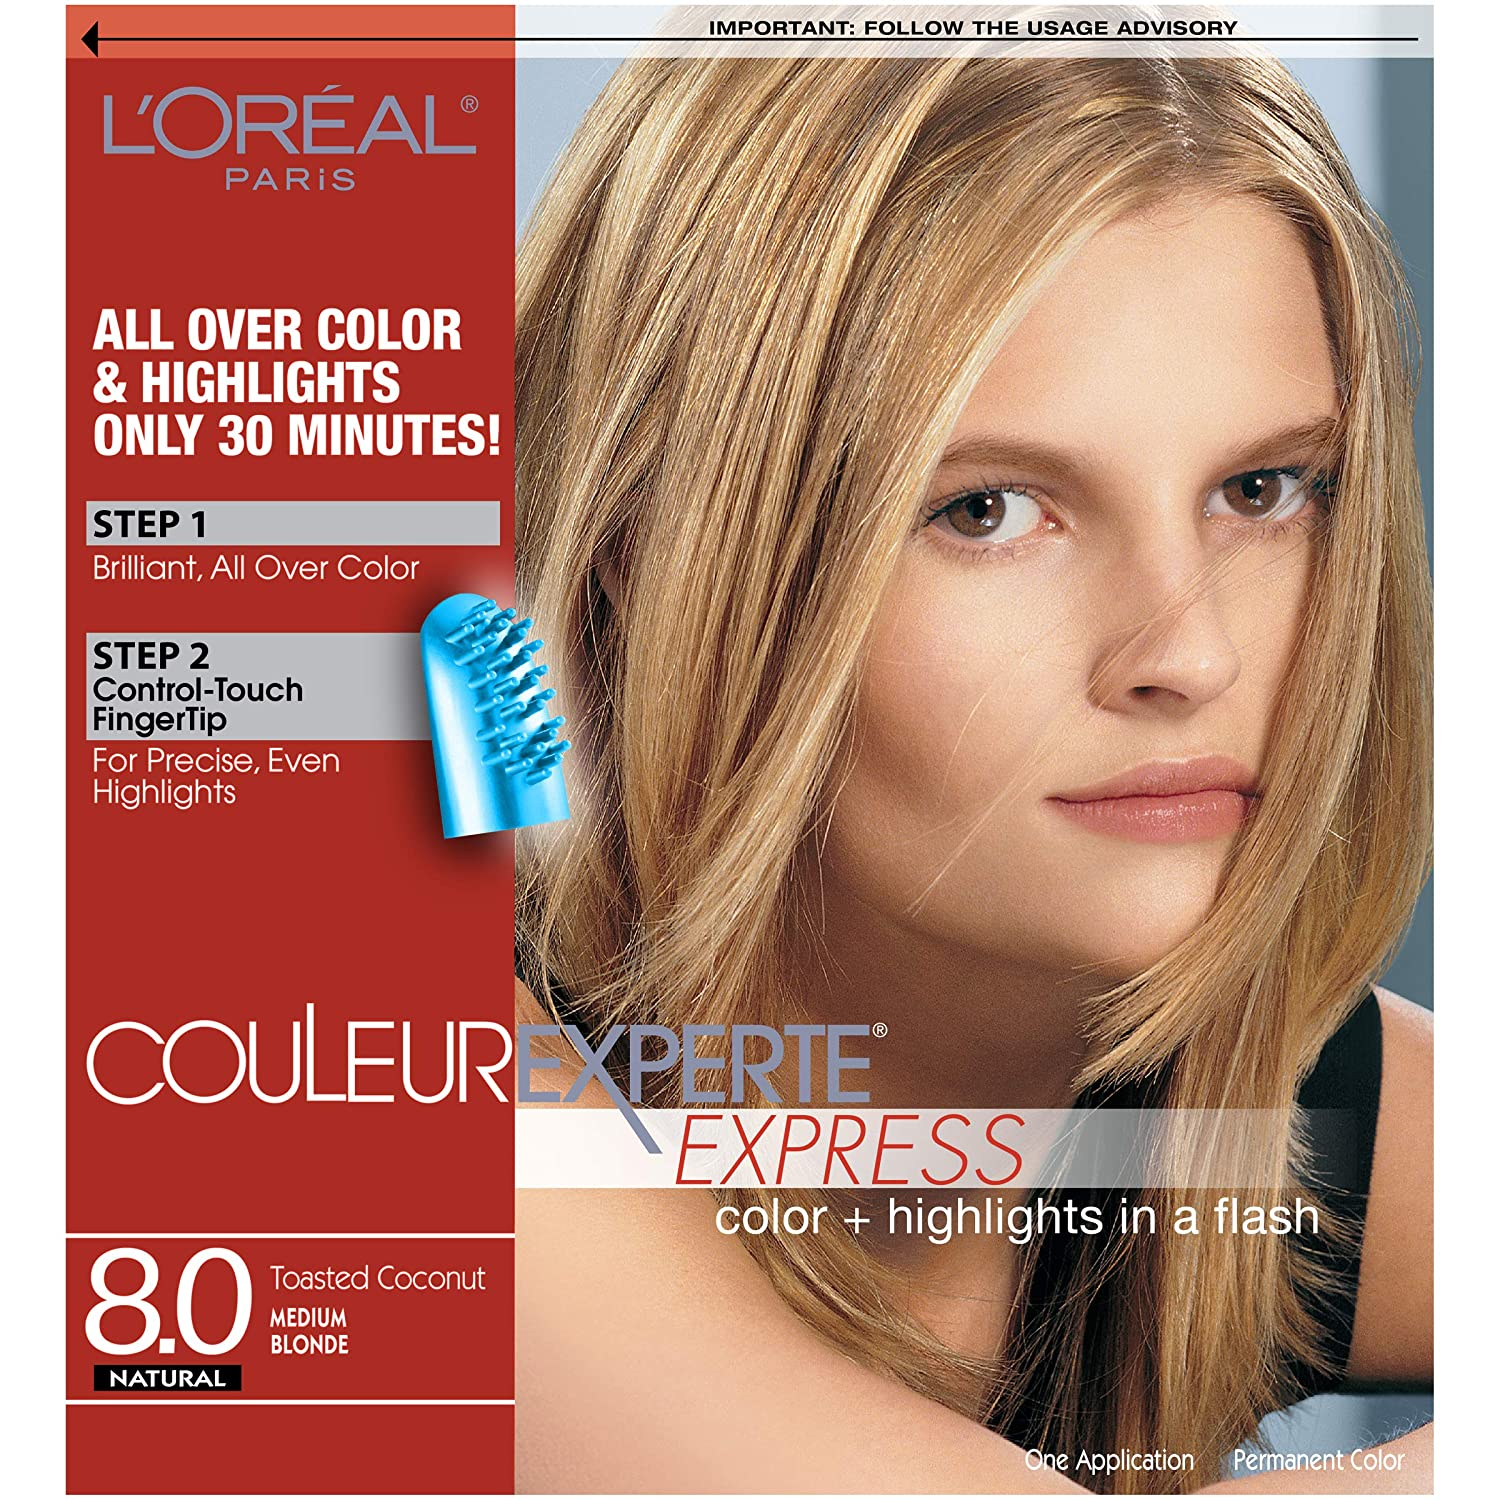 L'Oréal Paris Couleur Experte 2-Step Home Hair Color & Highlights Kit, Toasted Coconut